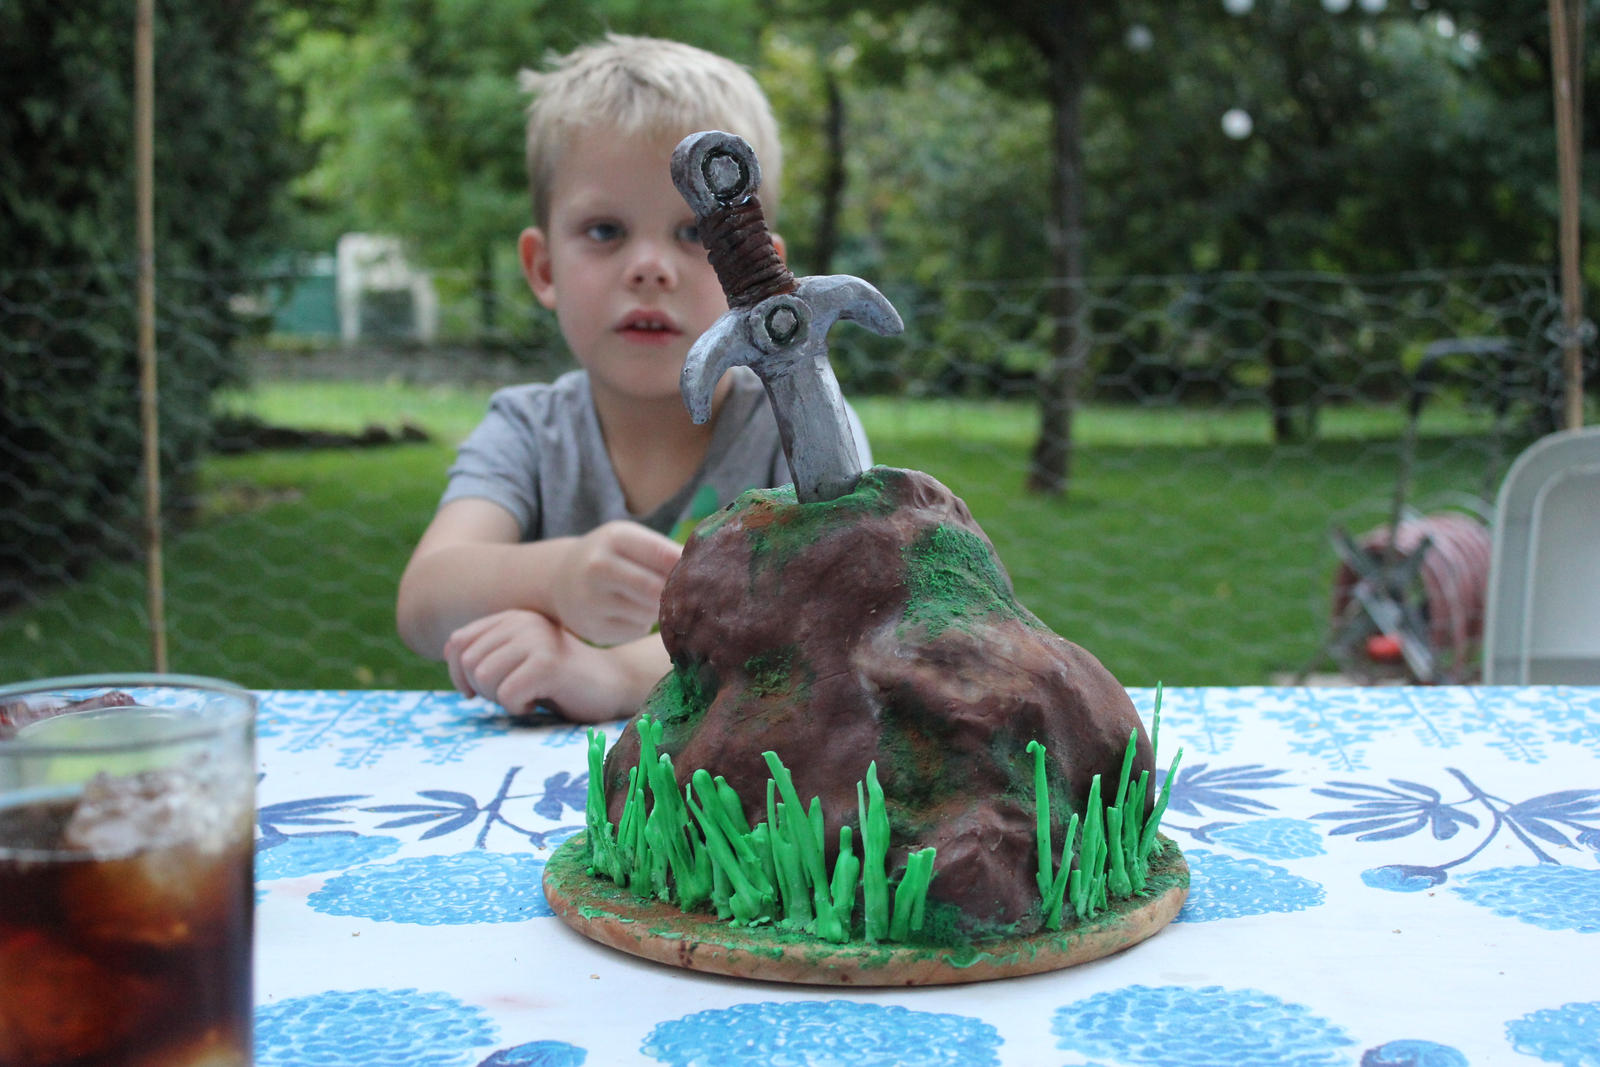 King Arthur Birthday Cake Recipe: Excalibur, Sword In Stone Cake From The Arthurian By